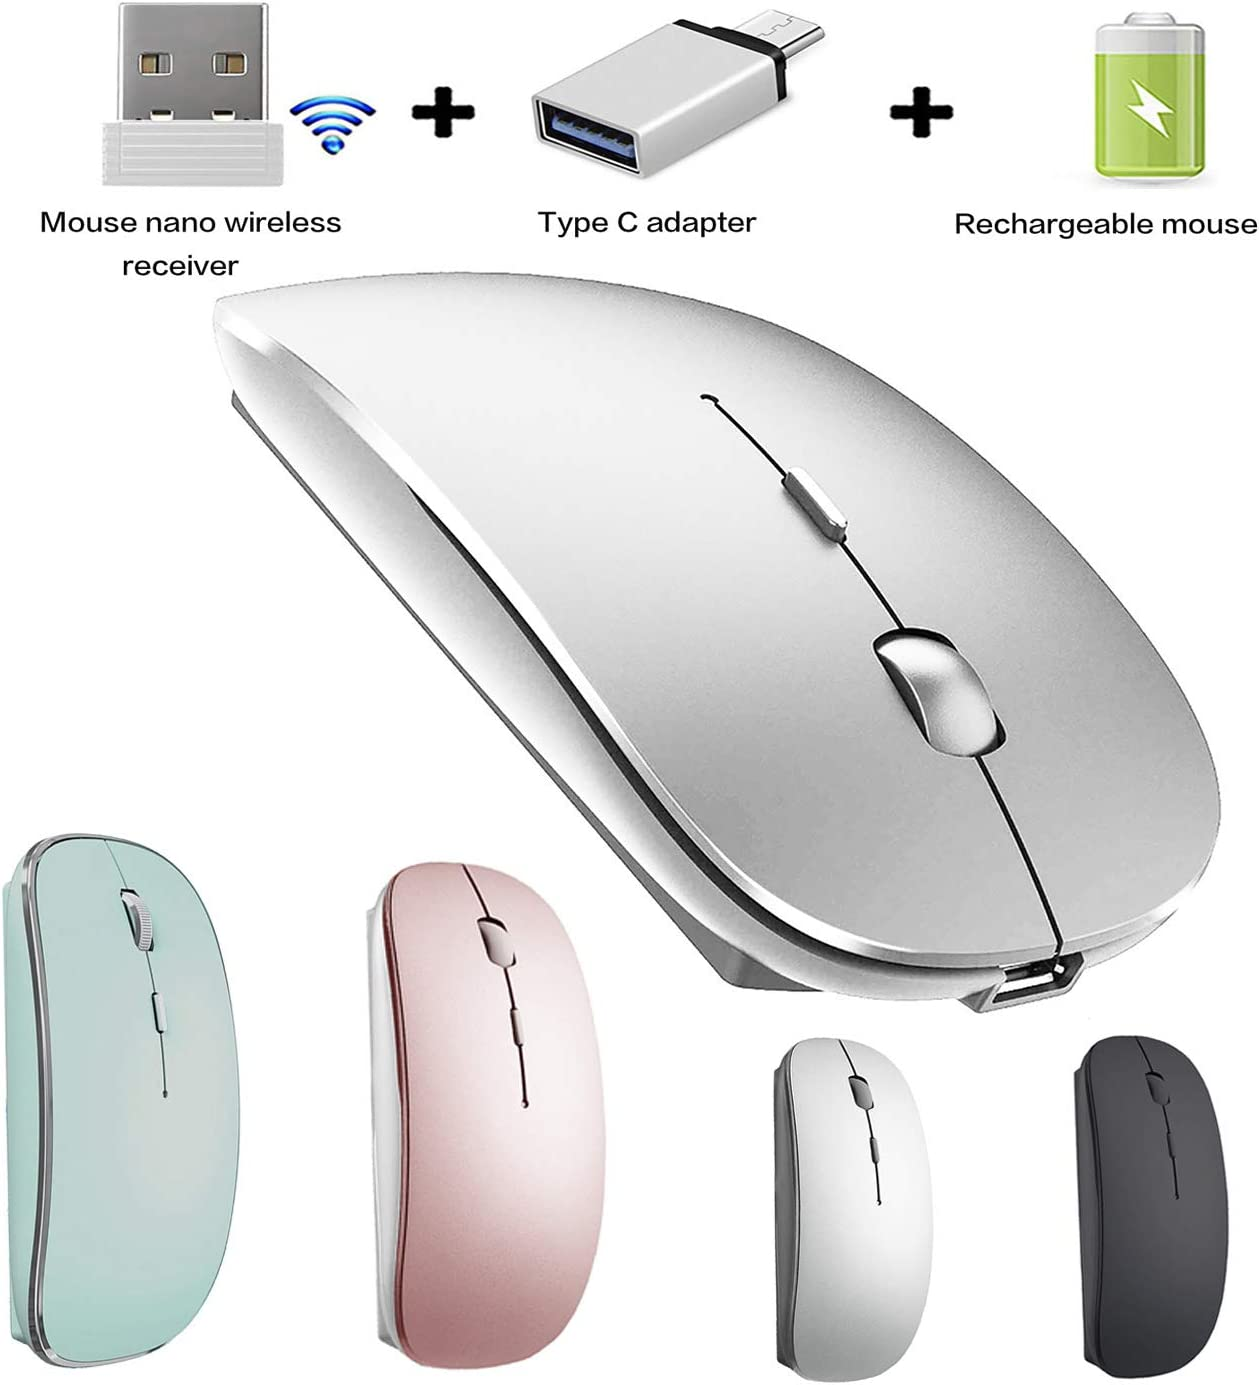 Wireless Mouse for Mac Pro Air Wireless Mouse for MacBook Air MacBook Pro Chromebook Laptop Desktop Computer iMac Win7 8 10 (Silver)